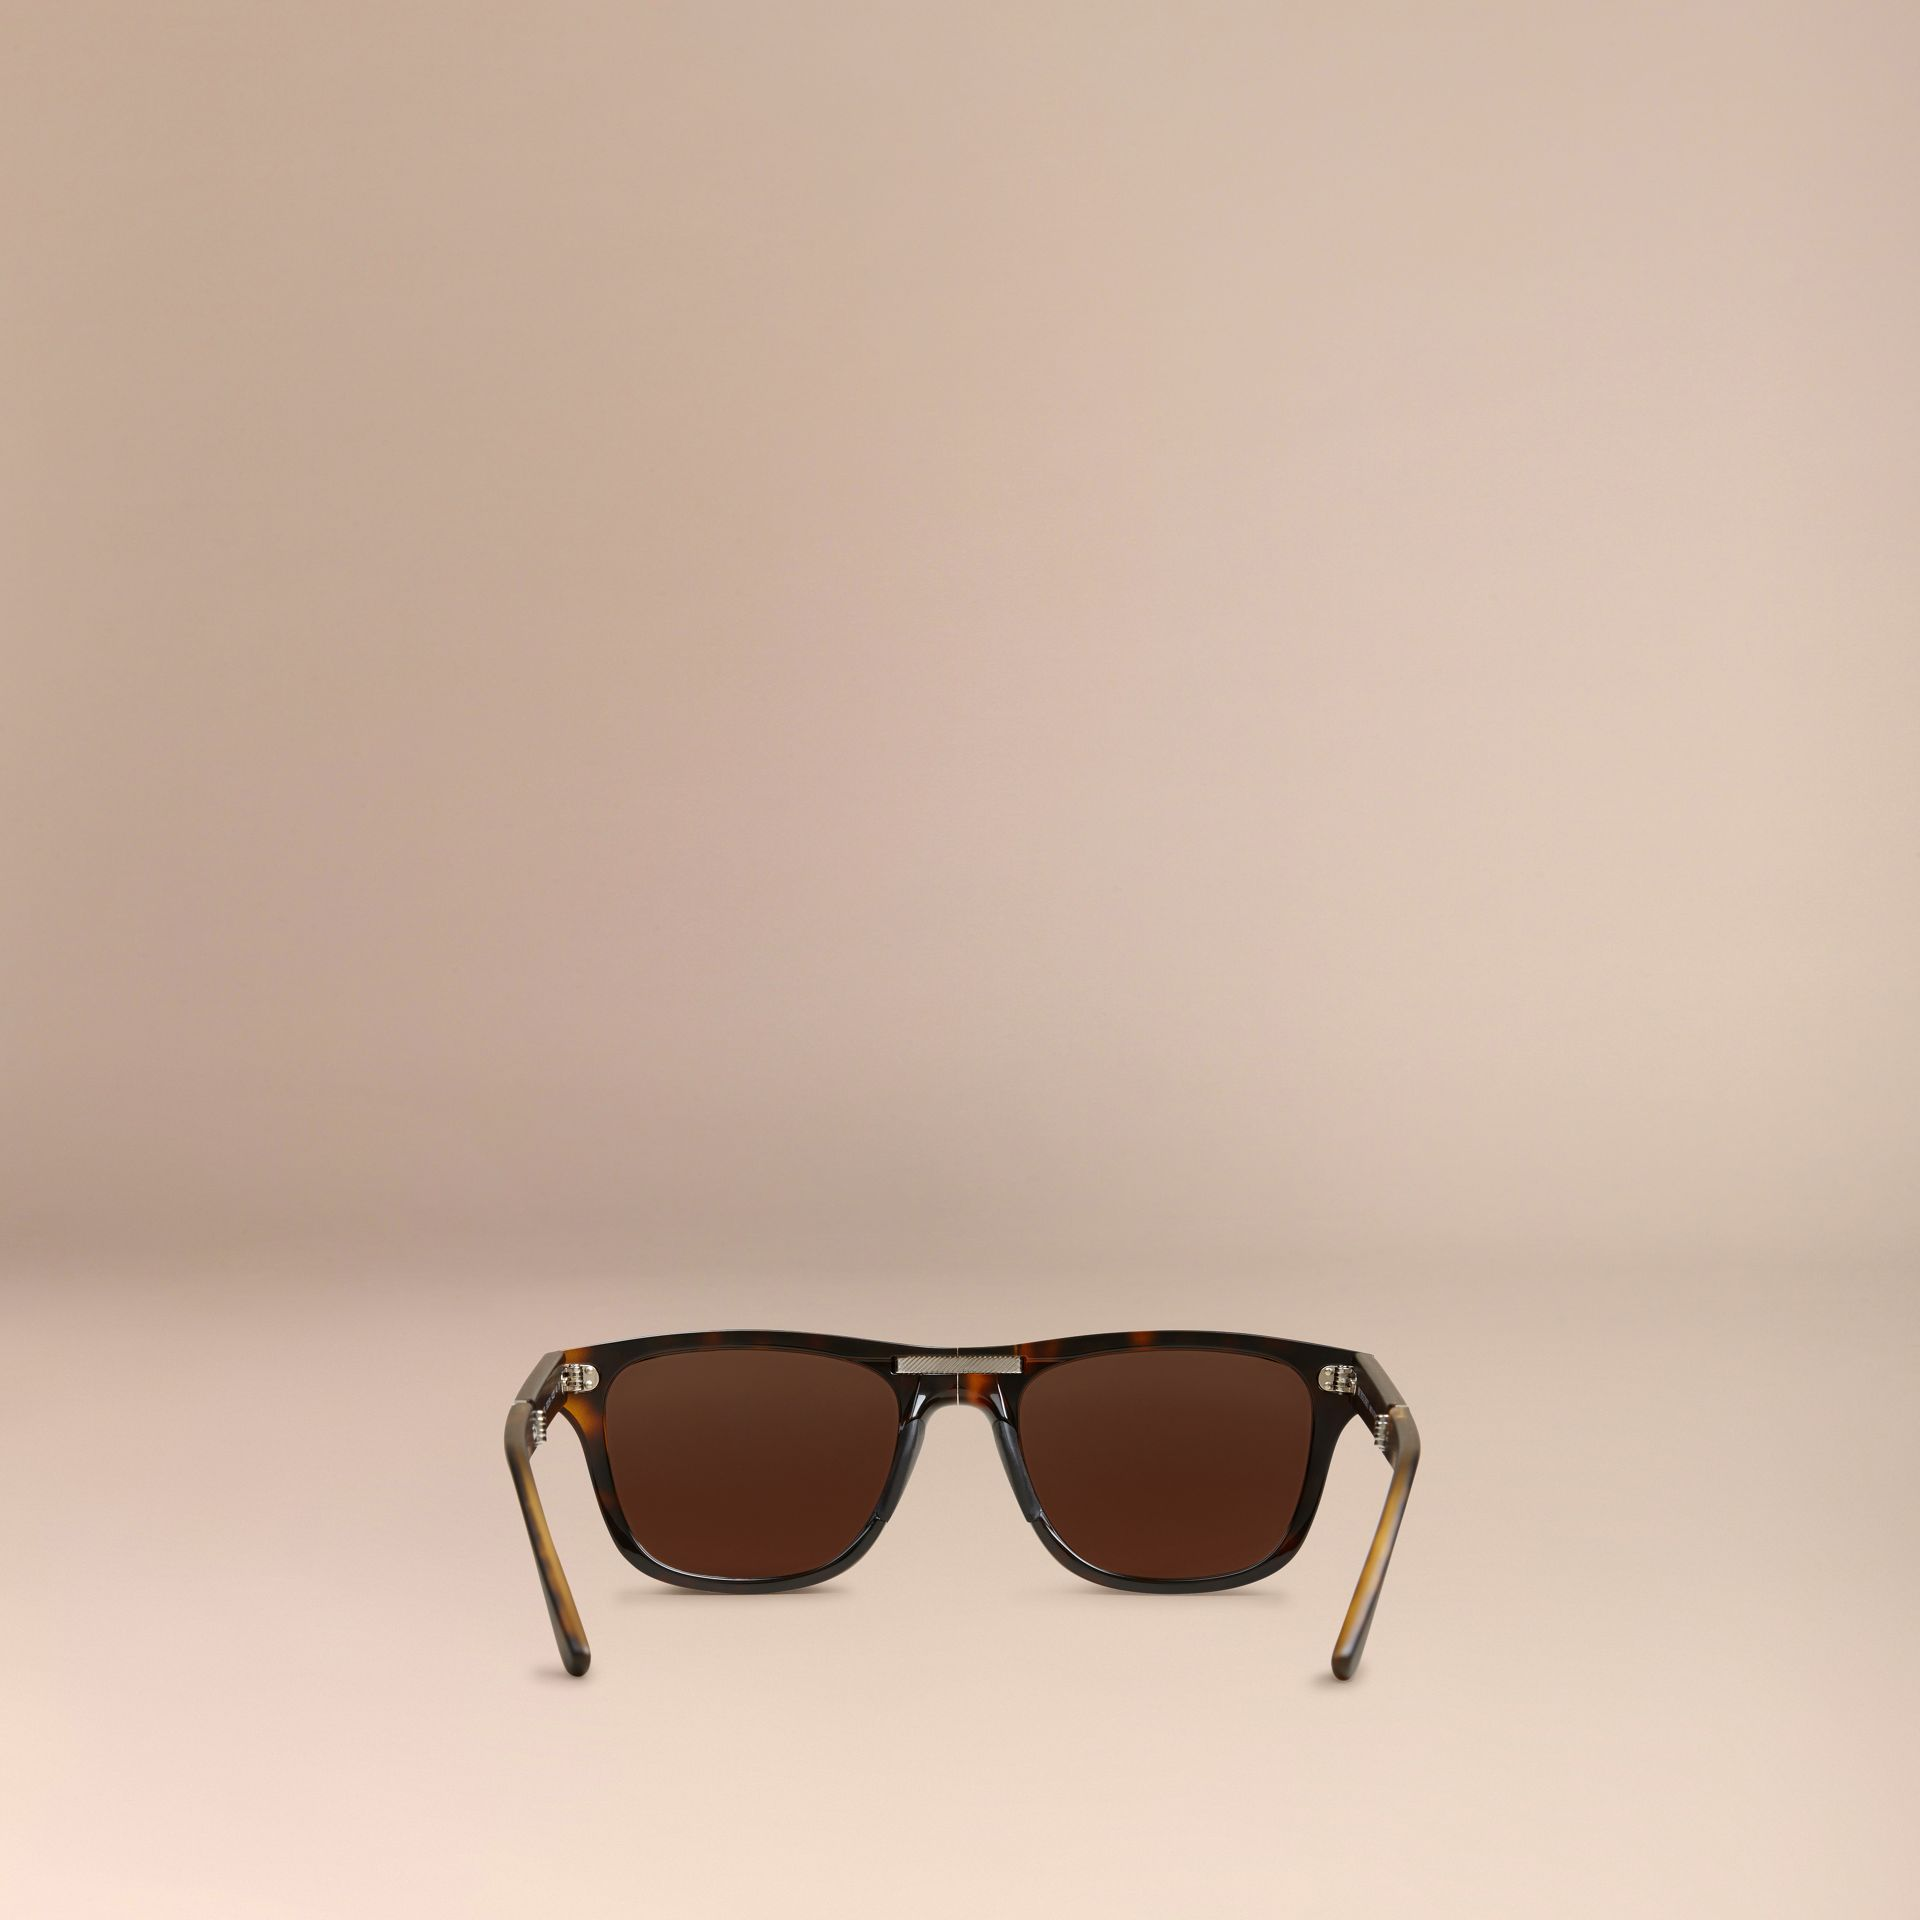 Folding Rectangular Frame Sunglasses in Dark Brown - Men | Burberry - gallery image 4